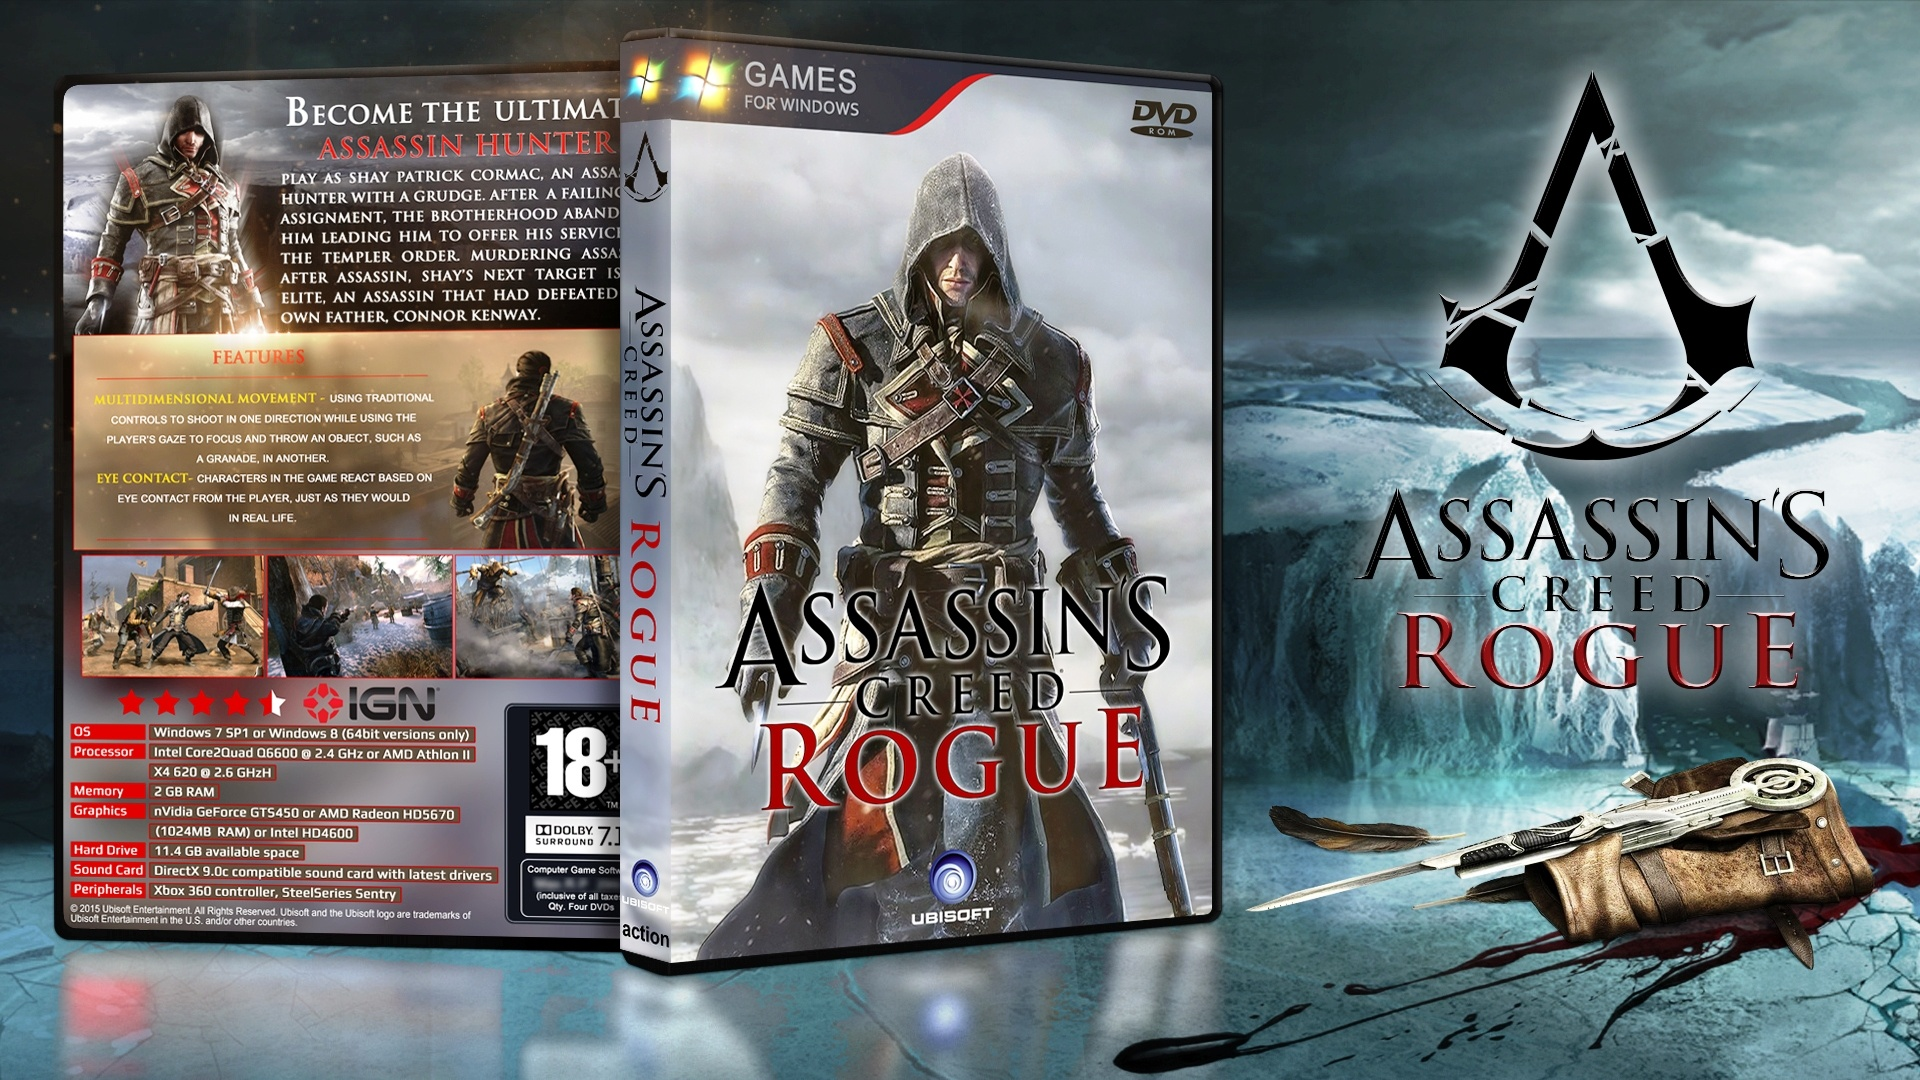 Assassin's Creed Rogue box cover